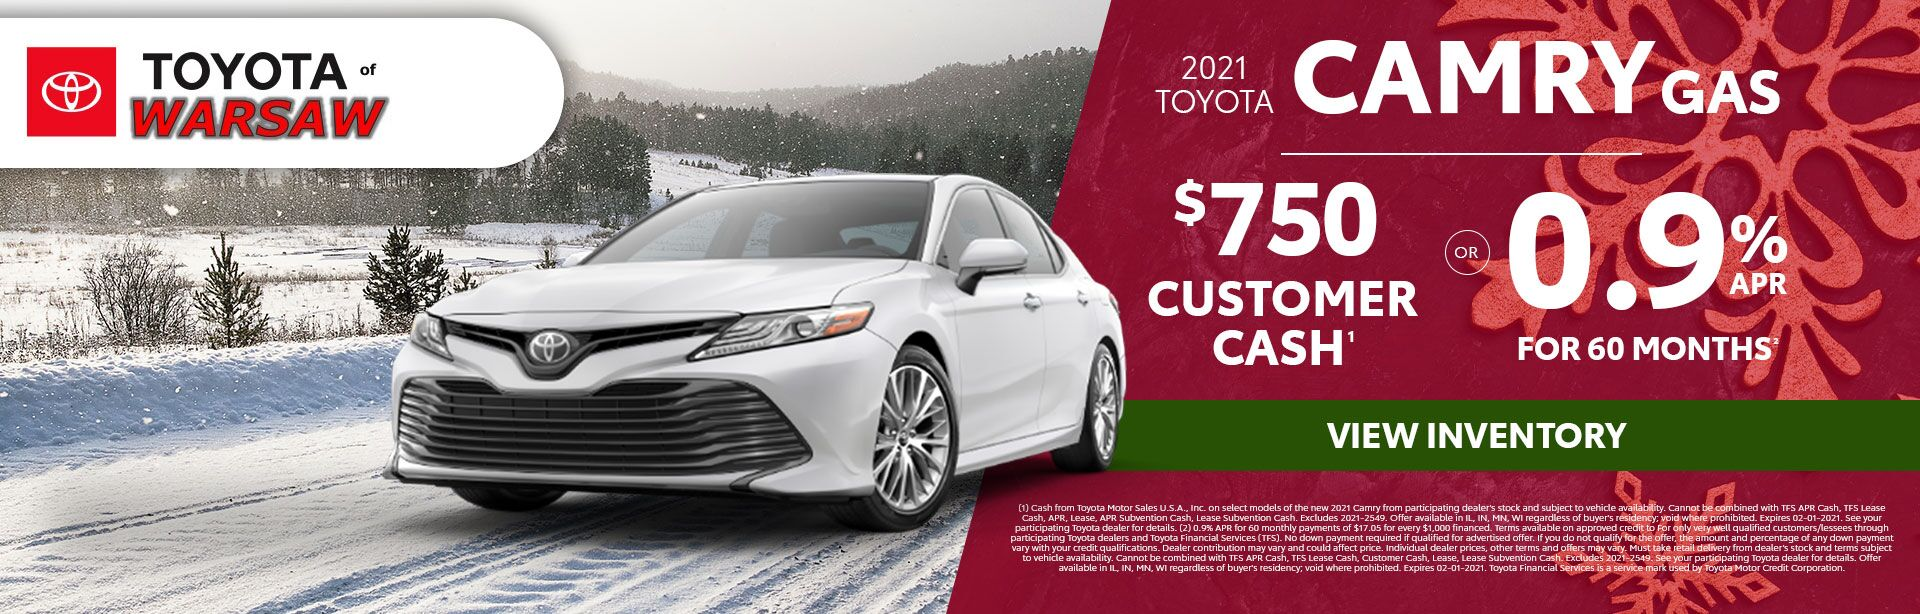 2021 Toyota Camry Gas